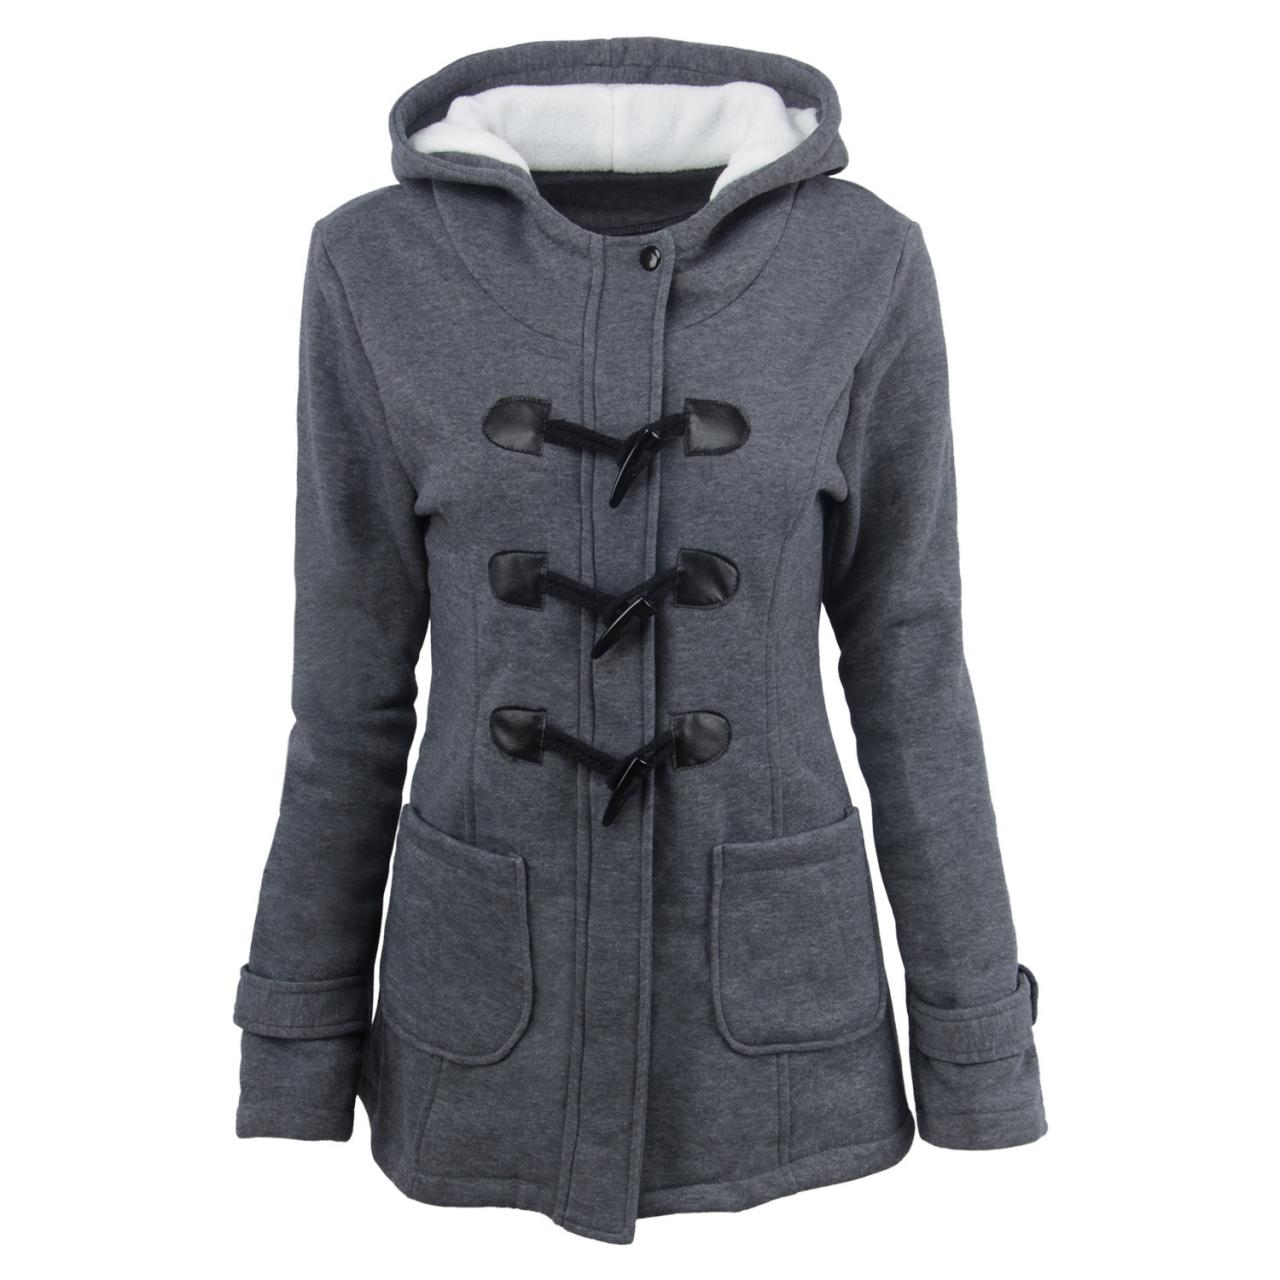 Women Parka Jacket Hooded Solid Warm Horns Buckle Winter Long Sleeve Slim Wadded Long Casual Coat dark gray